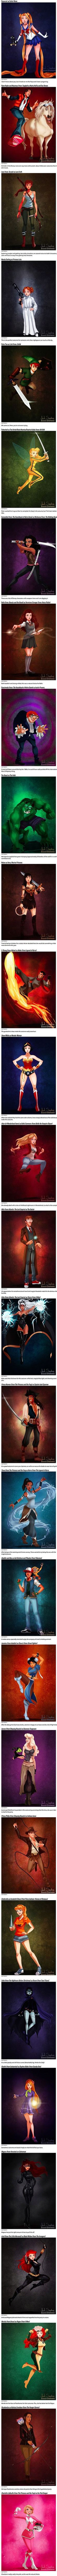 It is fun to think of your favorite characters as though they were everyday people. You can even imagine what they'd do if Halloween was right around the corner.  That's exactly what artist Isaiah Stephens was thinking about when he created his Halloween series. It features some beloved Disney characters donning other iconic outfits for what we can only imagine is a pretty amazing, if fictional, Halloween ball.